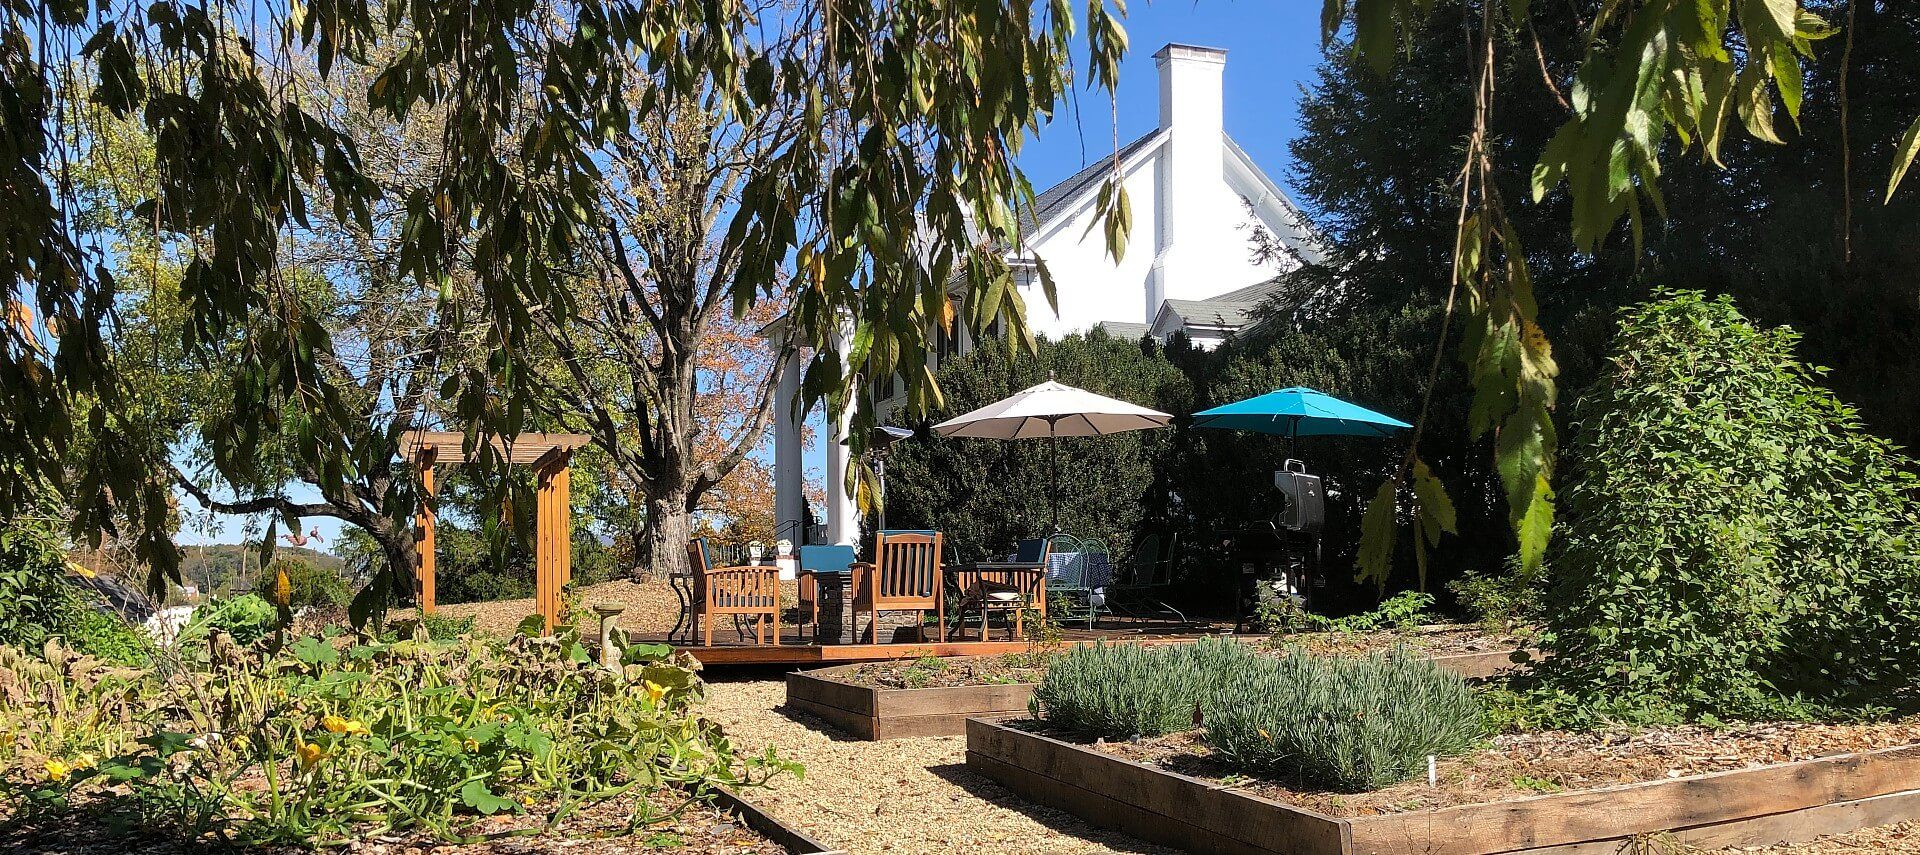 Expansive outdoor patio with pergola and deck with table and chairs and two umbrellas